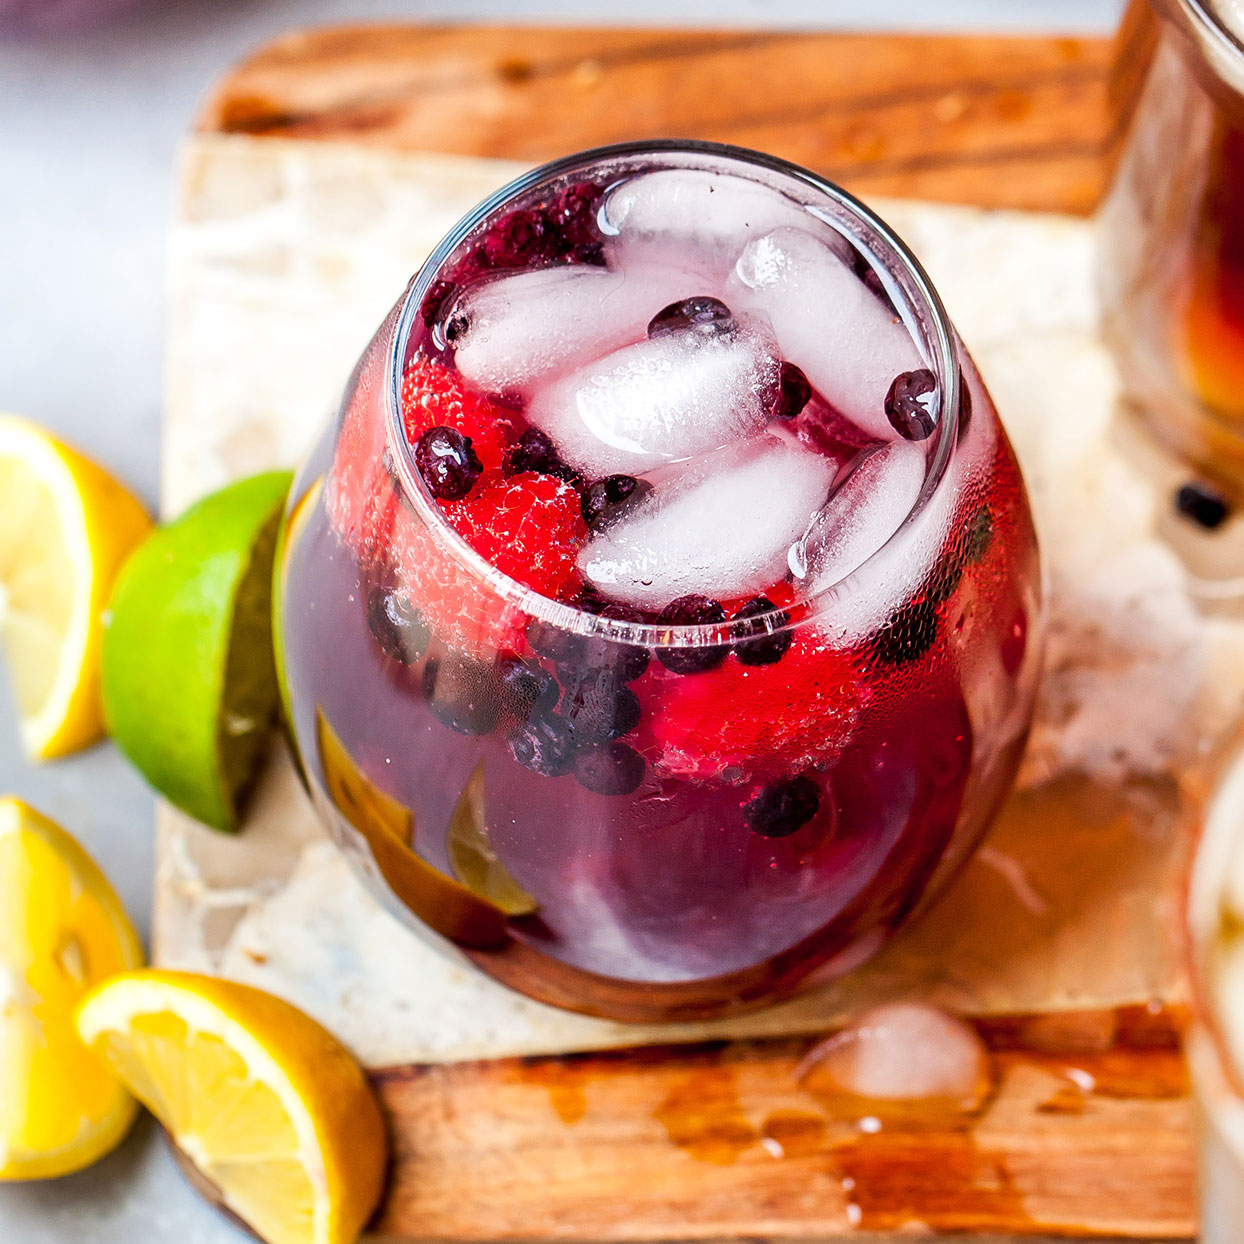 This bright and bubbly sipper combines berries with vodka and seltzer to make a colorful 3-ingredient cocktail you can enjoy year-round, thanks to frozen berries. Amp up the flavor even more by using a flavored seltzer rather than plain!